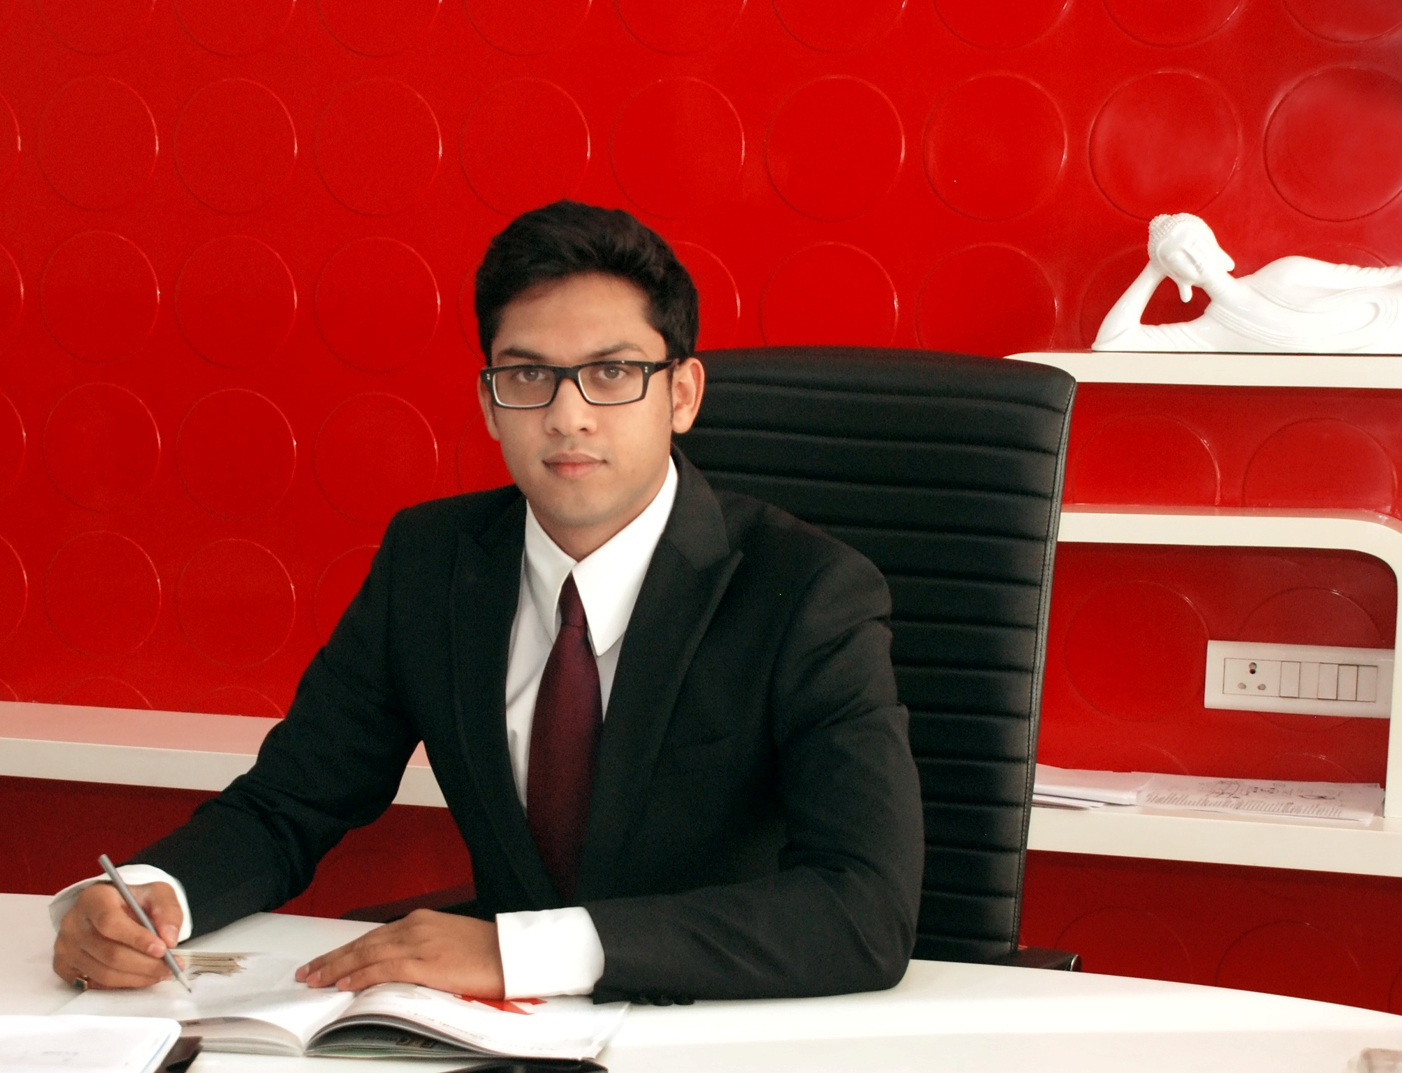 Mohit Goel, CEO, Omaxe, Indian real estate news, India realty news, India property market, Track2Media, Track2Realty